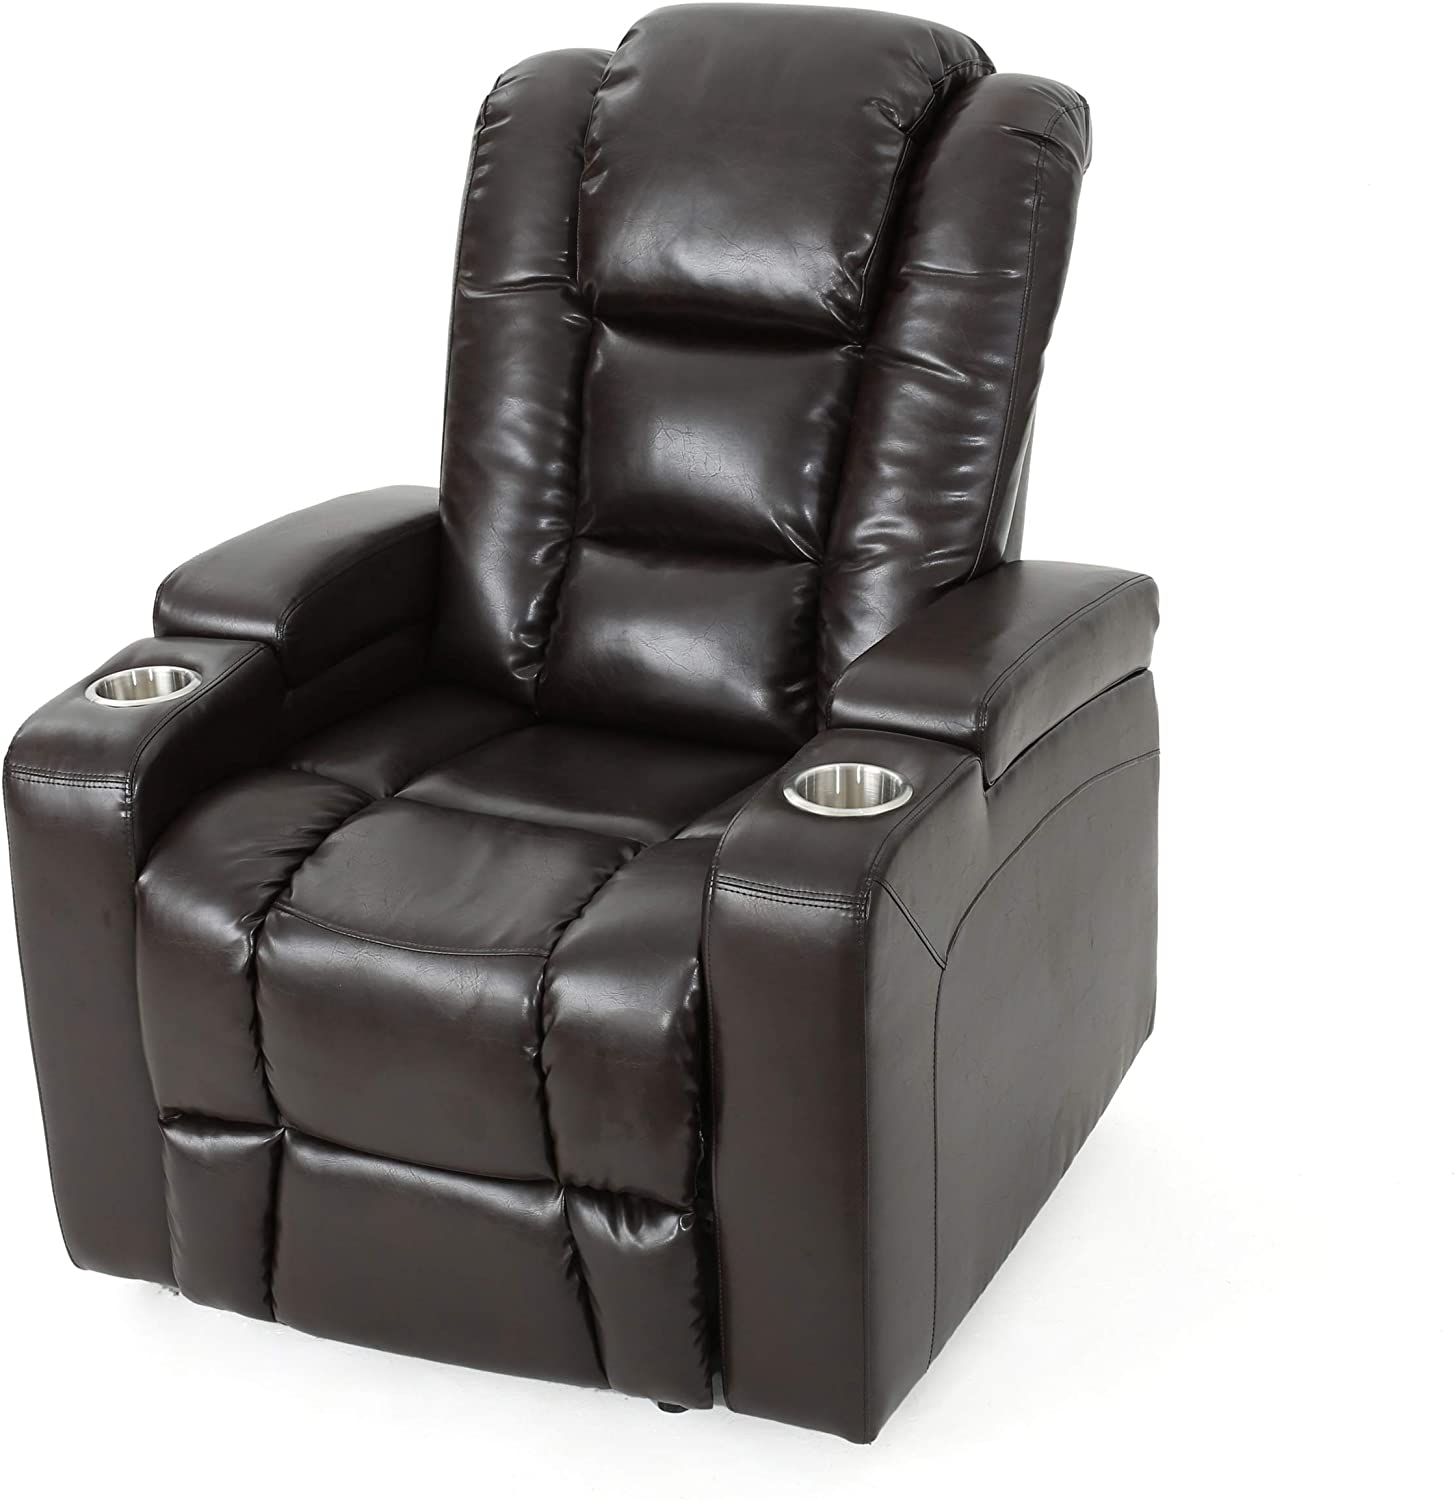 everette power motion recliner isolated on white background